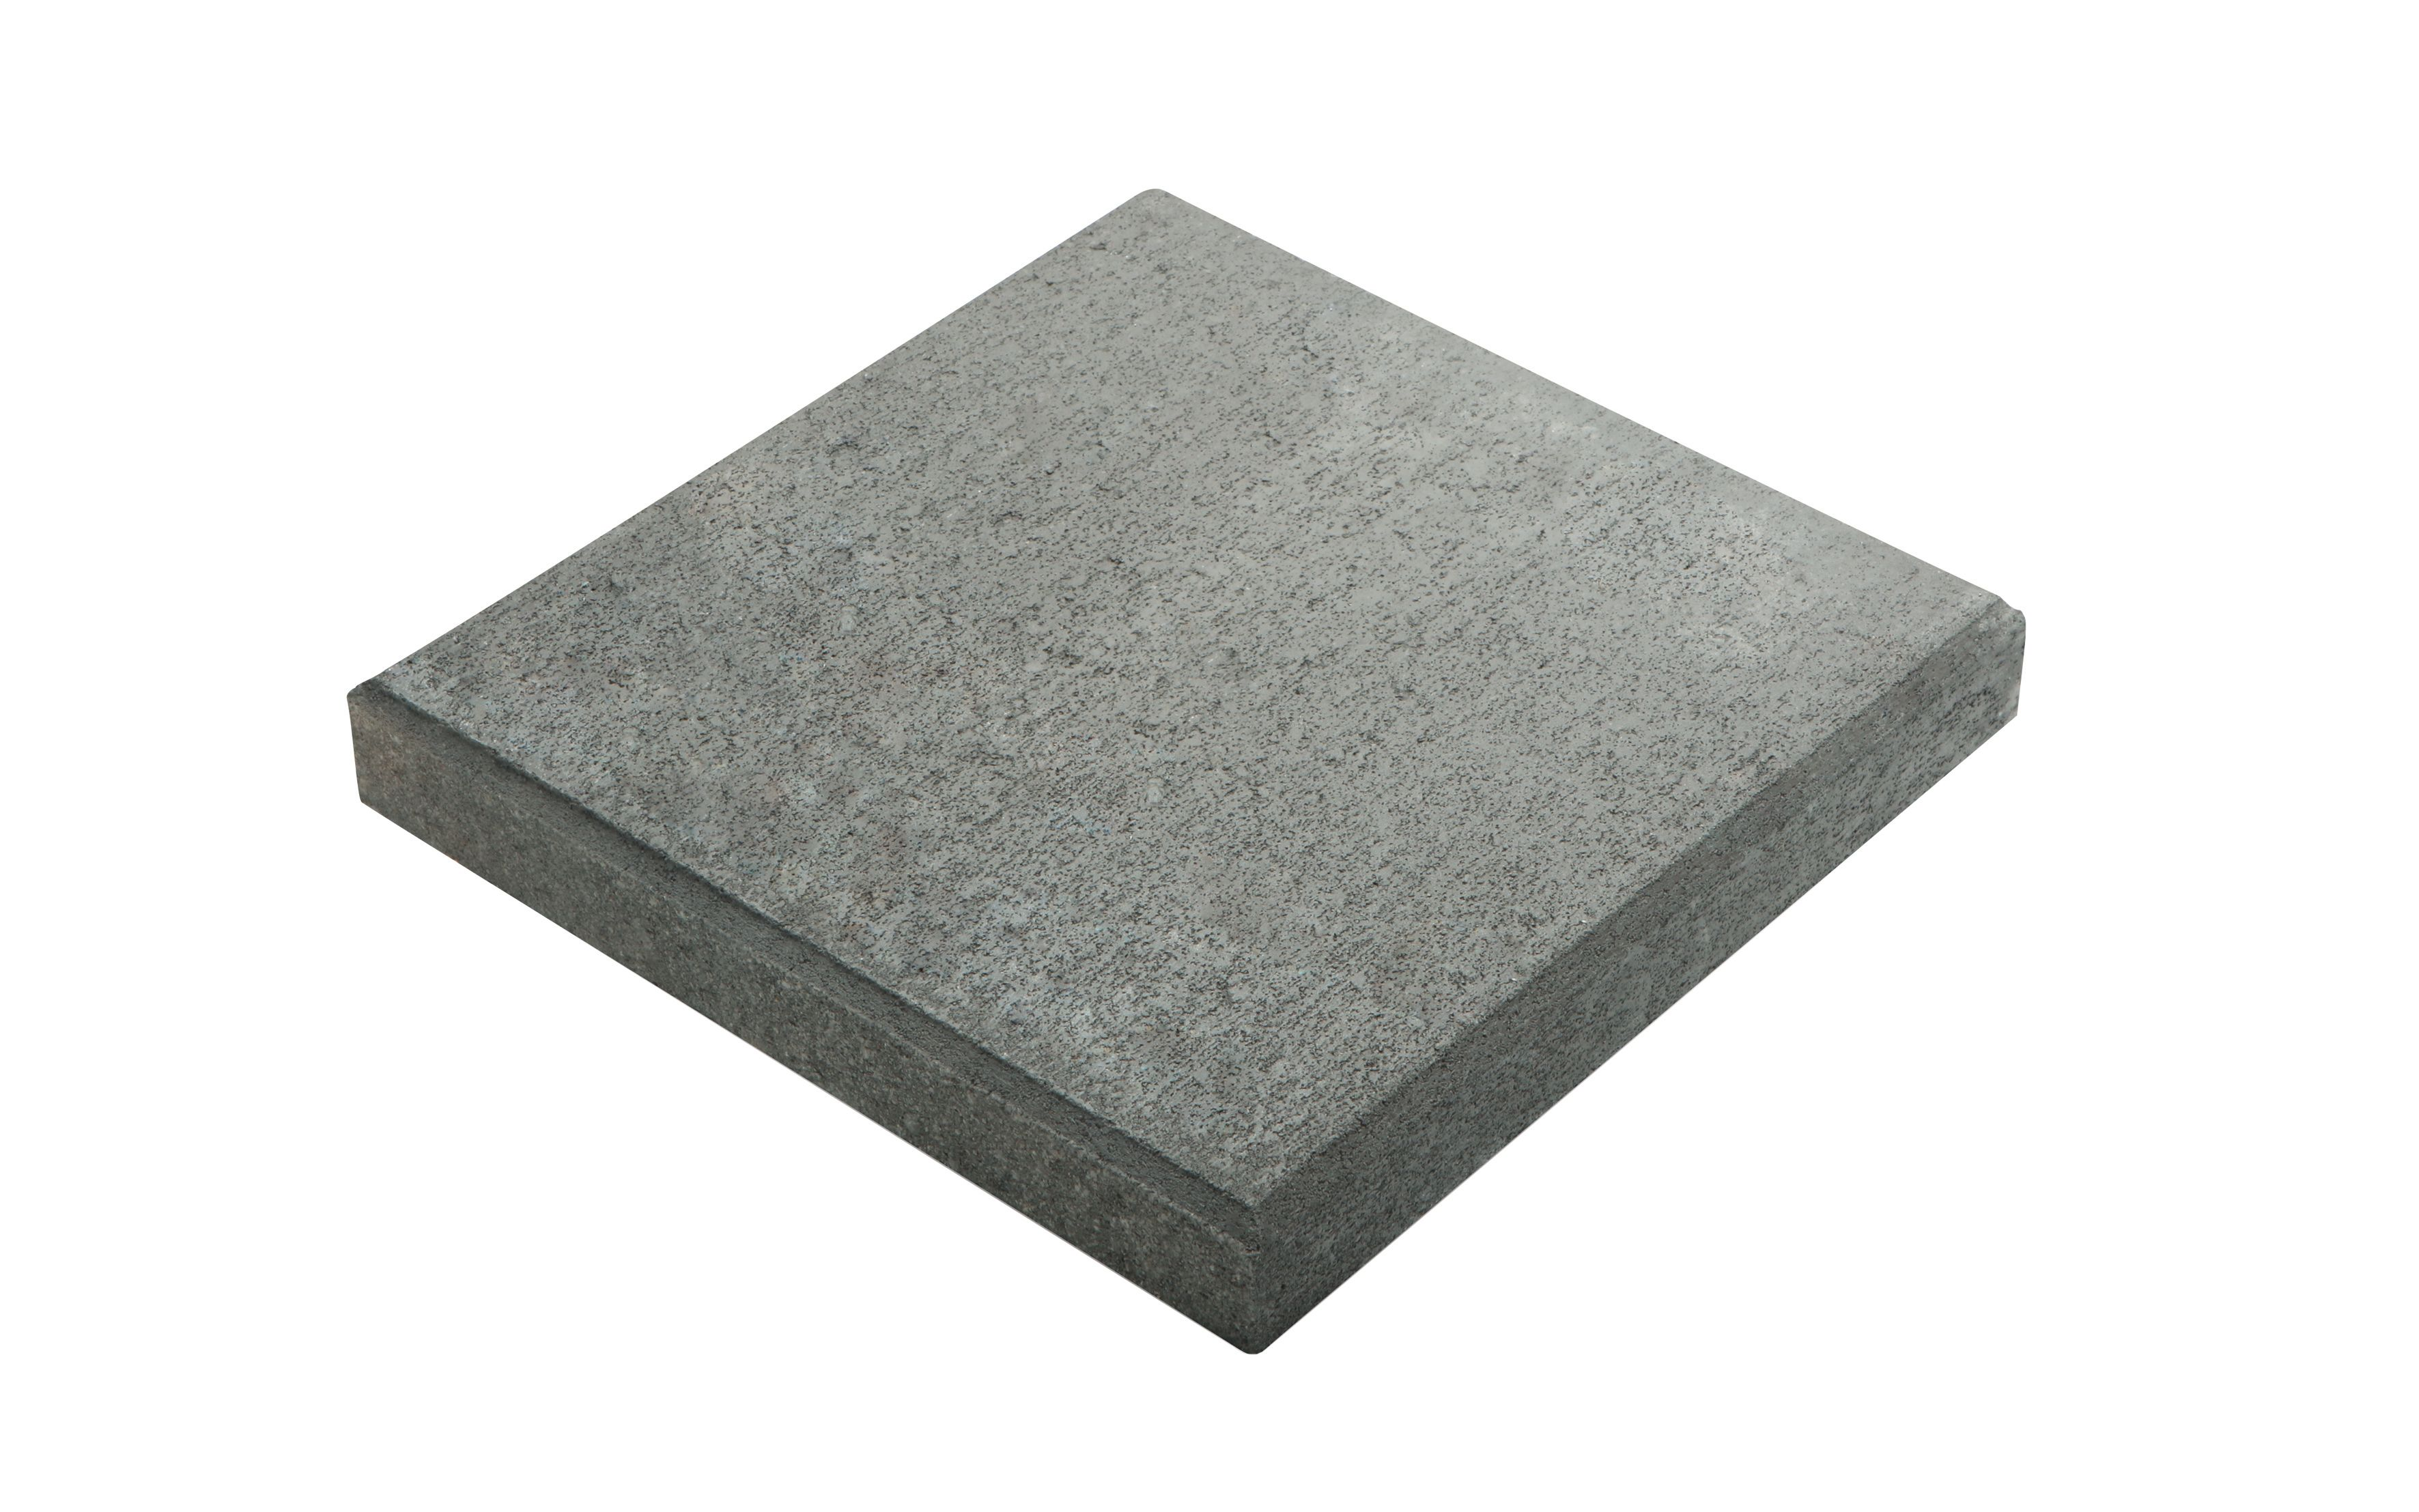 My Pave 300 X 300 X 40mm Charcoal Paver Bunnings Warehouse